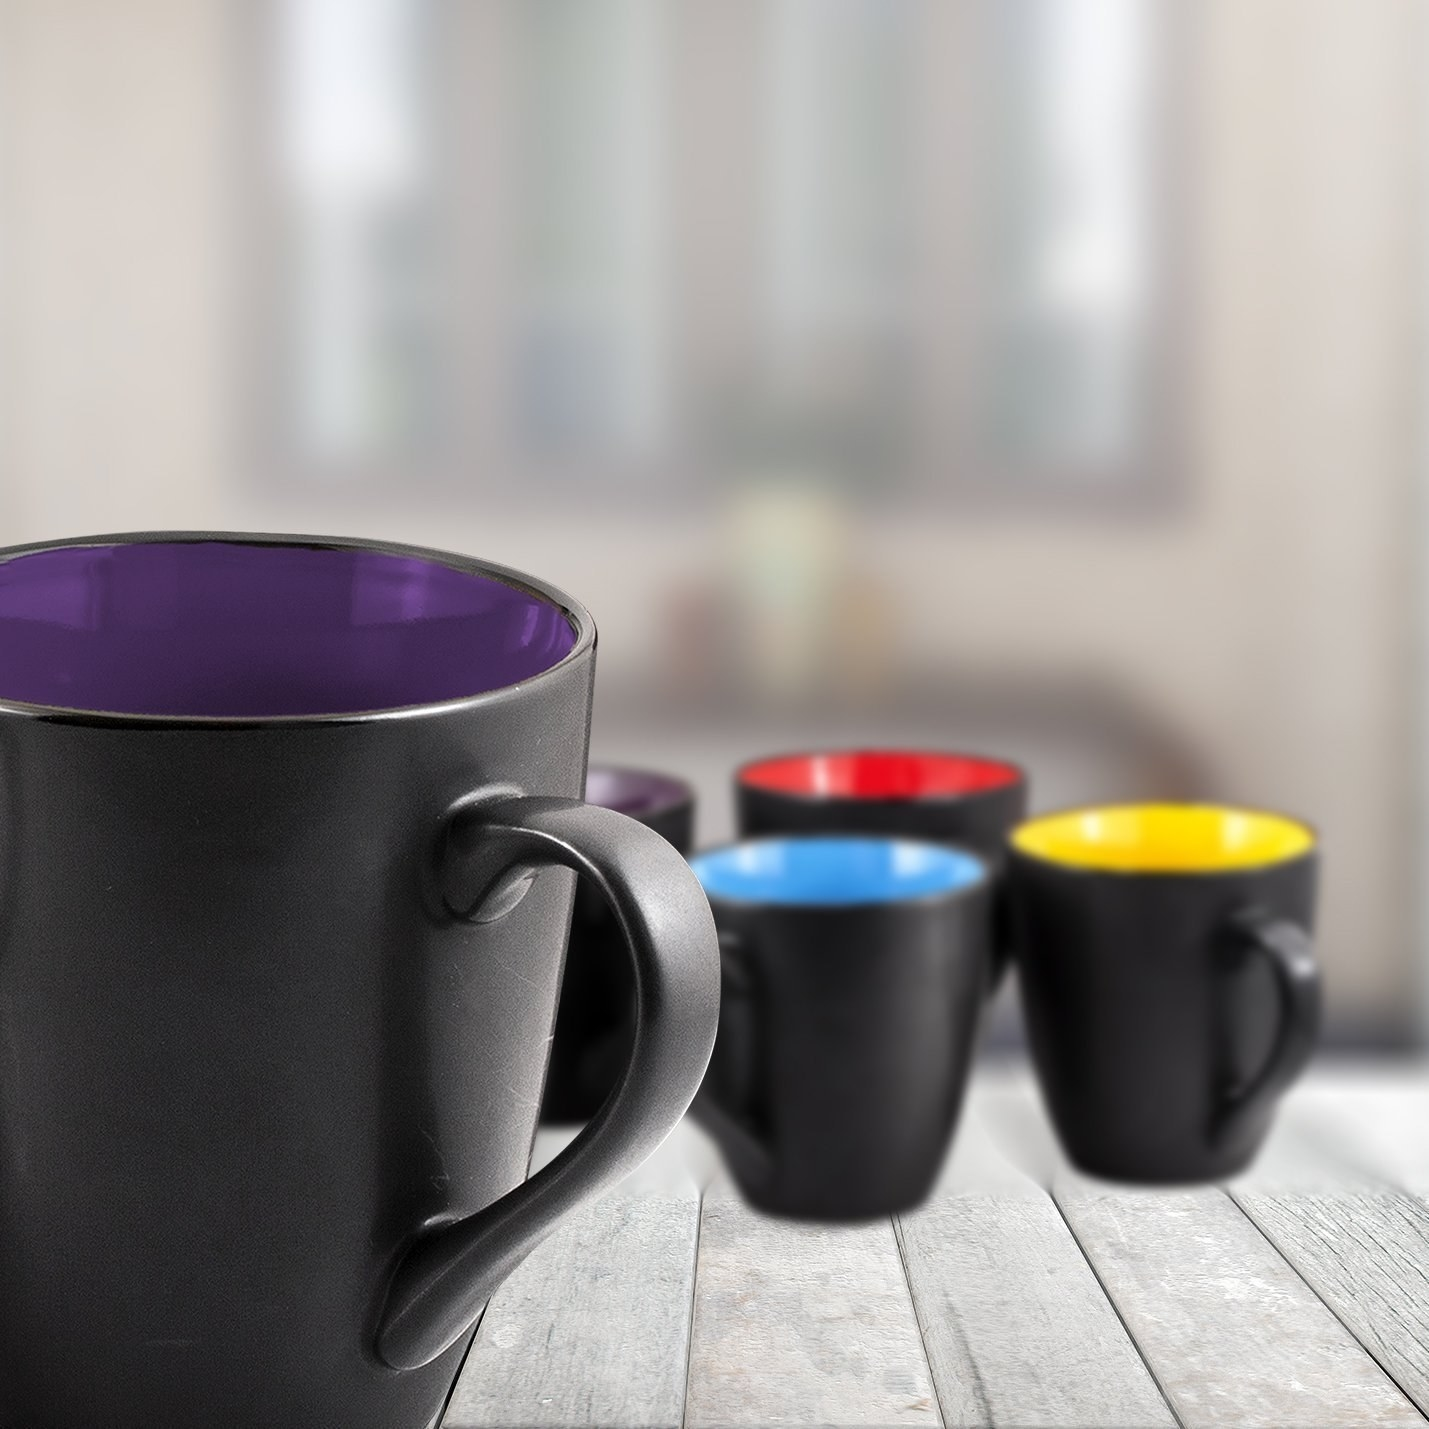 Promising Review: U0026quot;These Cups Are Awesome. I Know Theyu0026#x27;